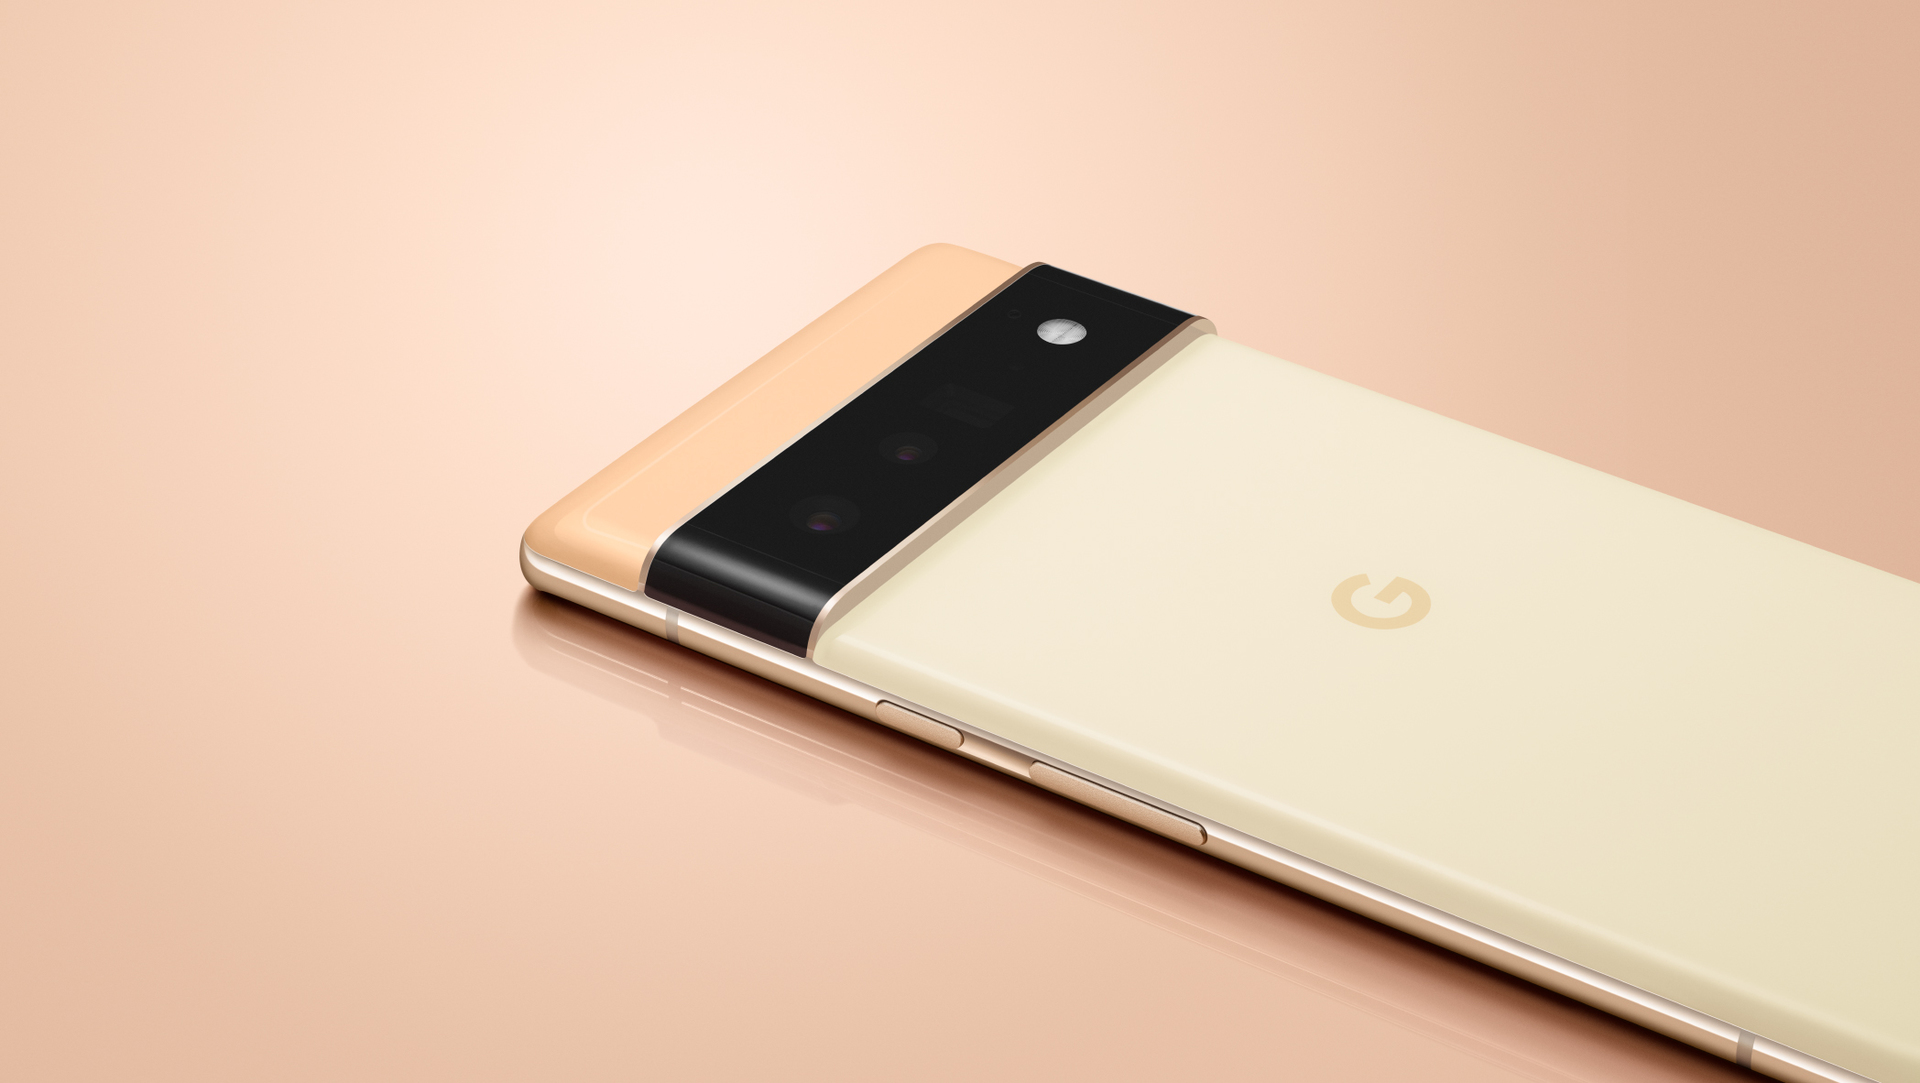 upcoming smartphones for 2021 soon